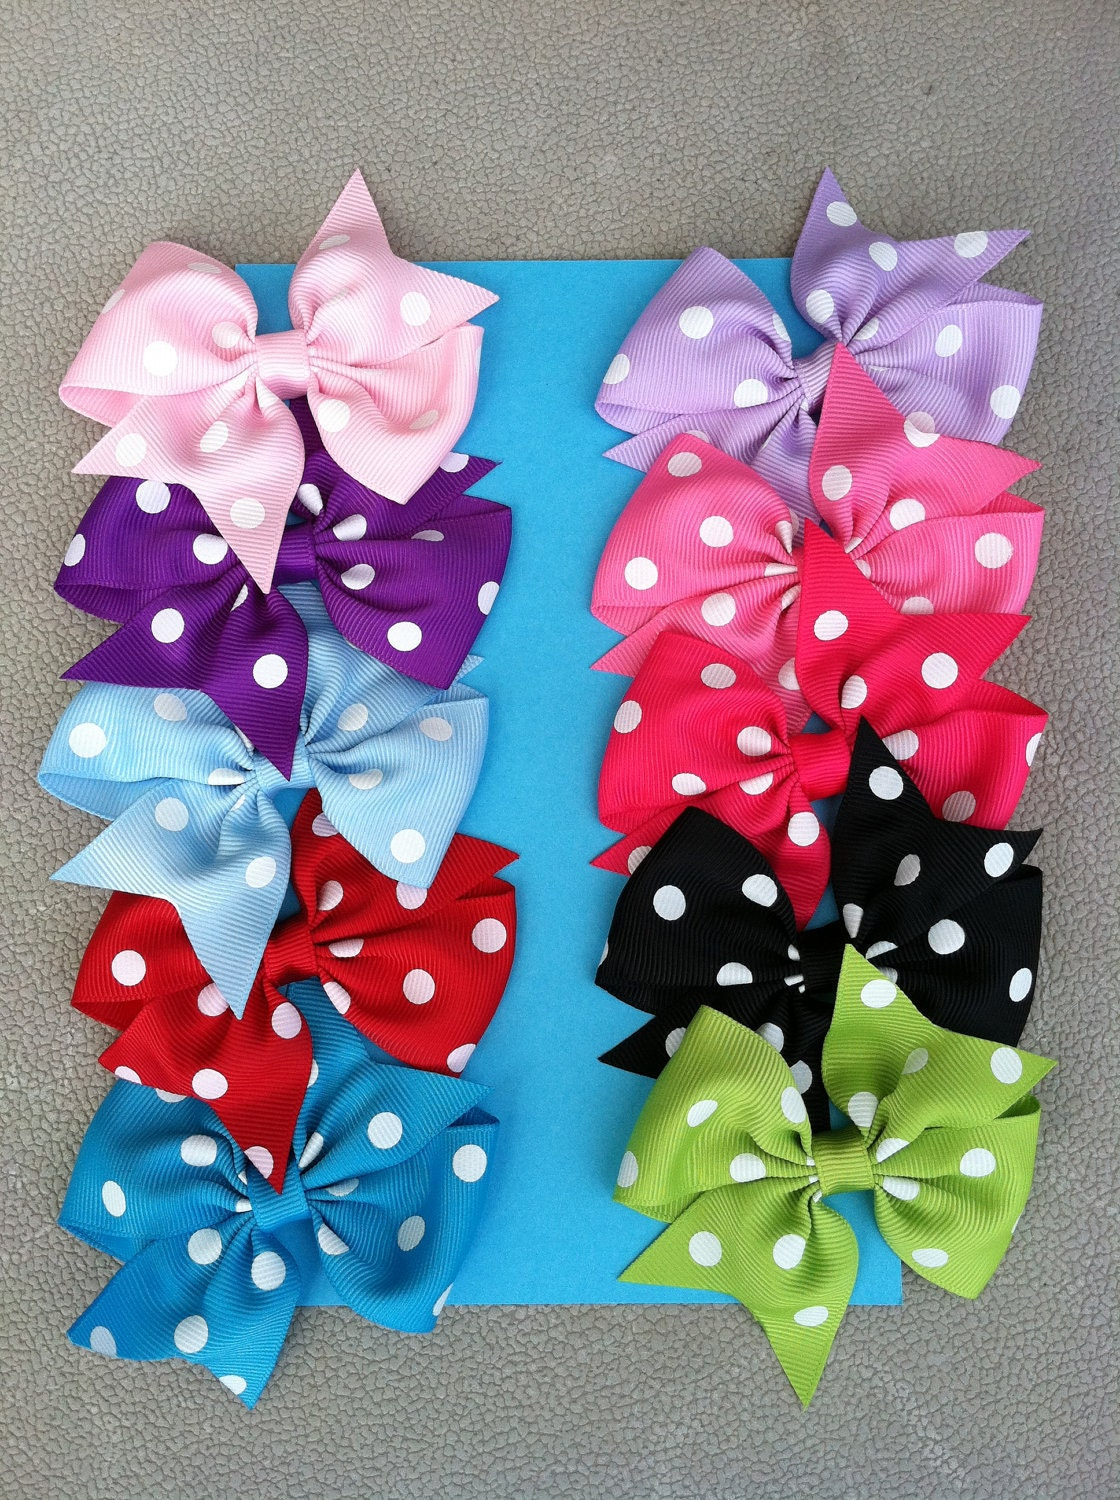 hair bows / set of 10 / polka dot / 10 colors /  newborn toddler big girl shower gifts birthday girl